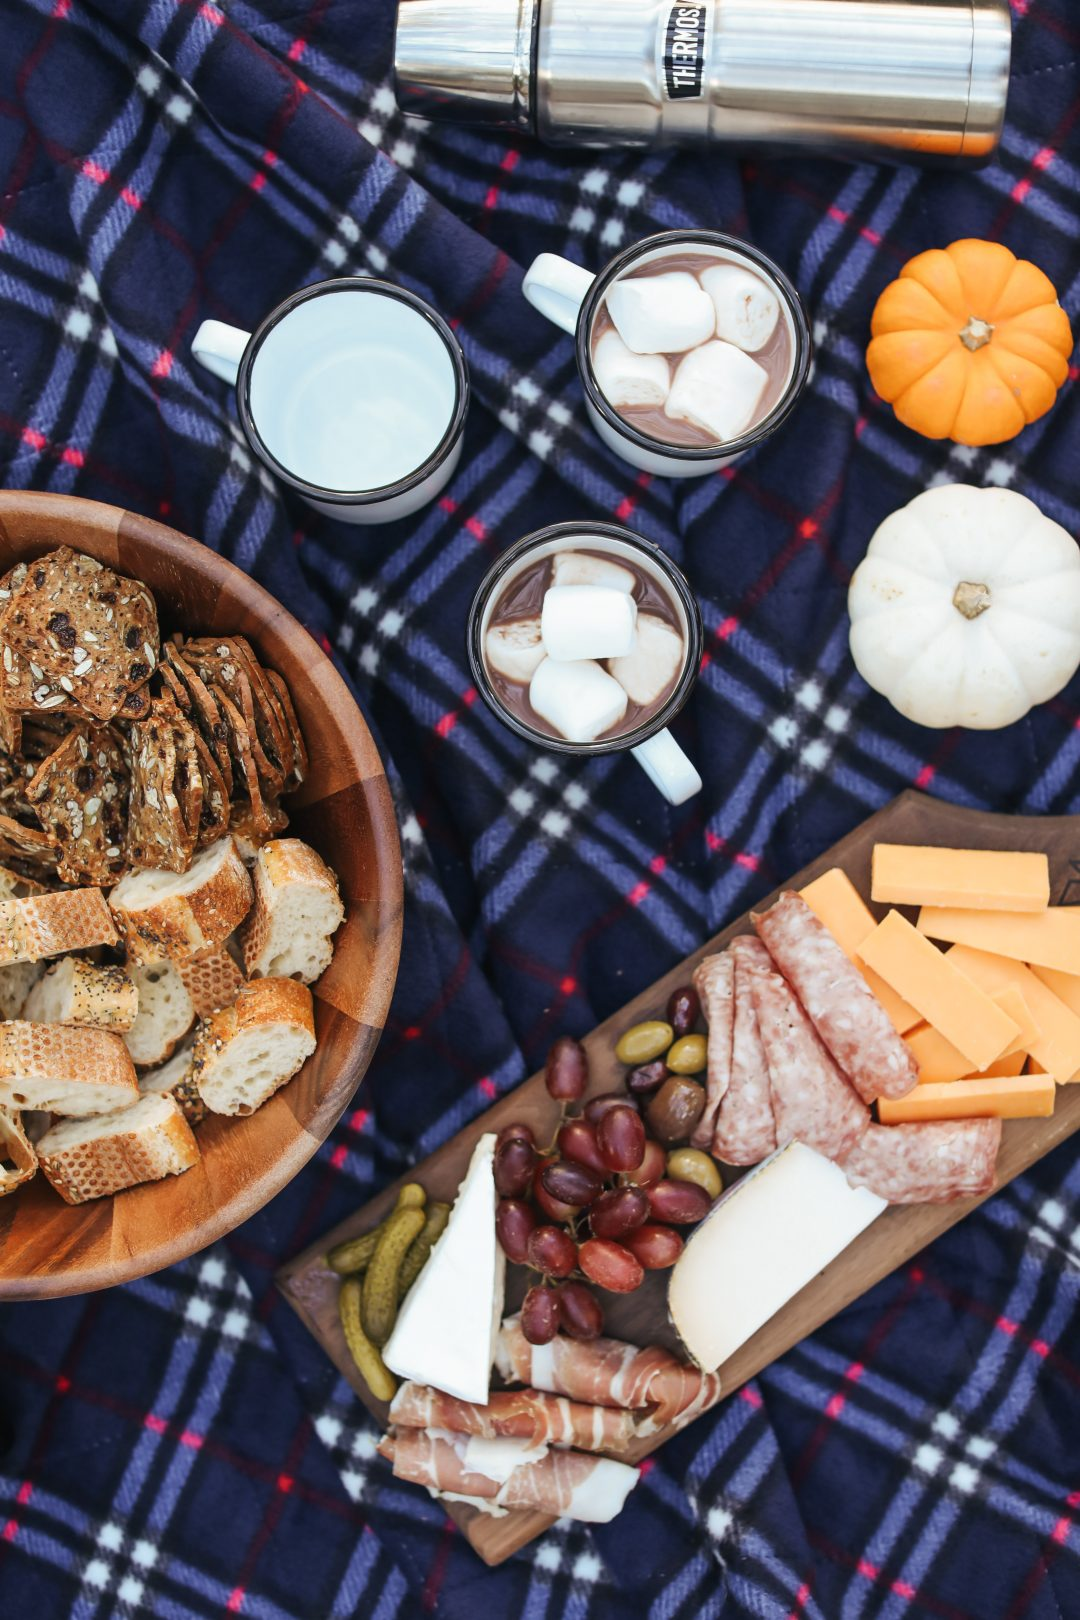 A Friendsgiving Picnic with Help from Uber.